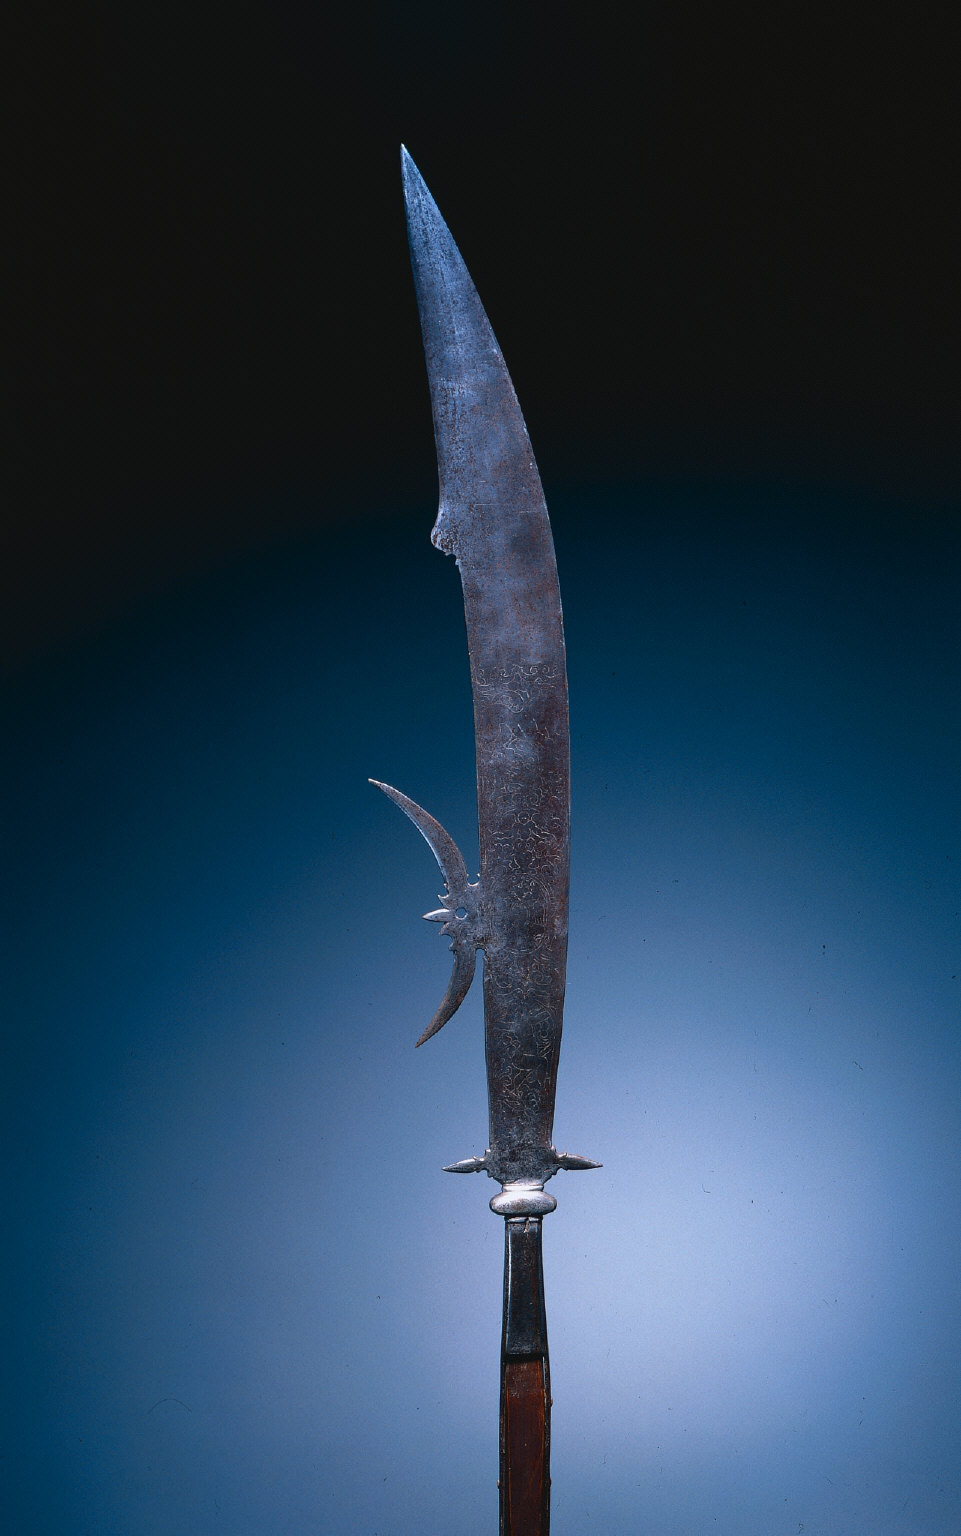 Glaive (with Arms of Giustini Family)